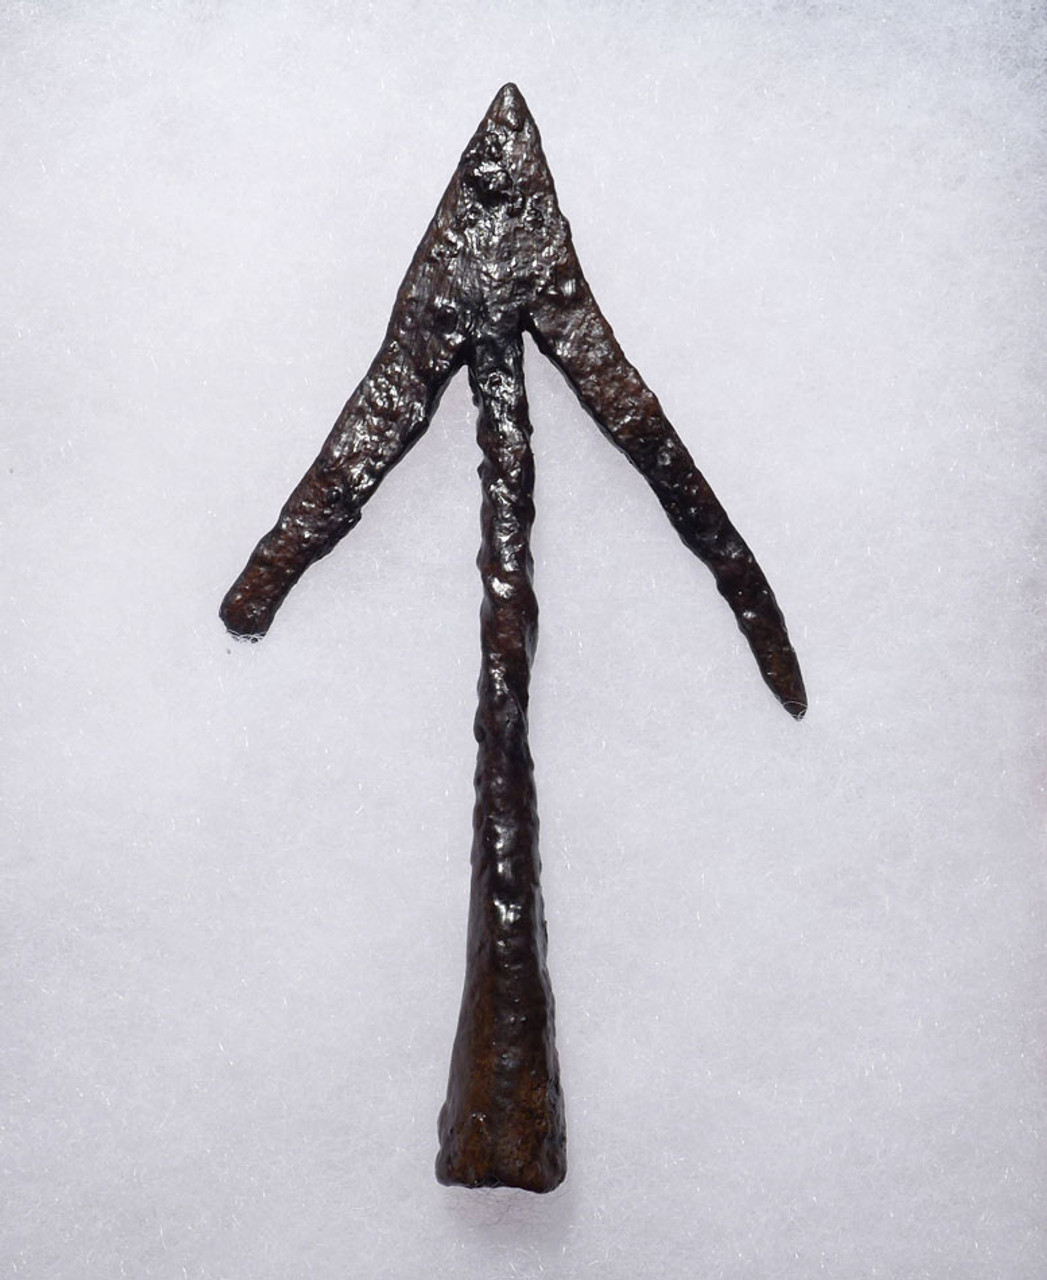 RARE COMPLETE ANCIENT SWALLOWTAIL BROAD HEAD HUNTING ARROWHEAD FROM THE LATE BYZANTINE ROMAN EMPIRE *R195